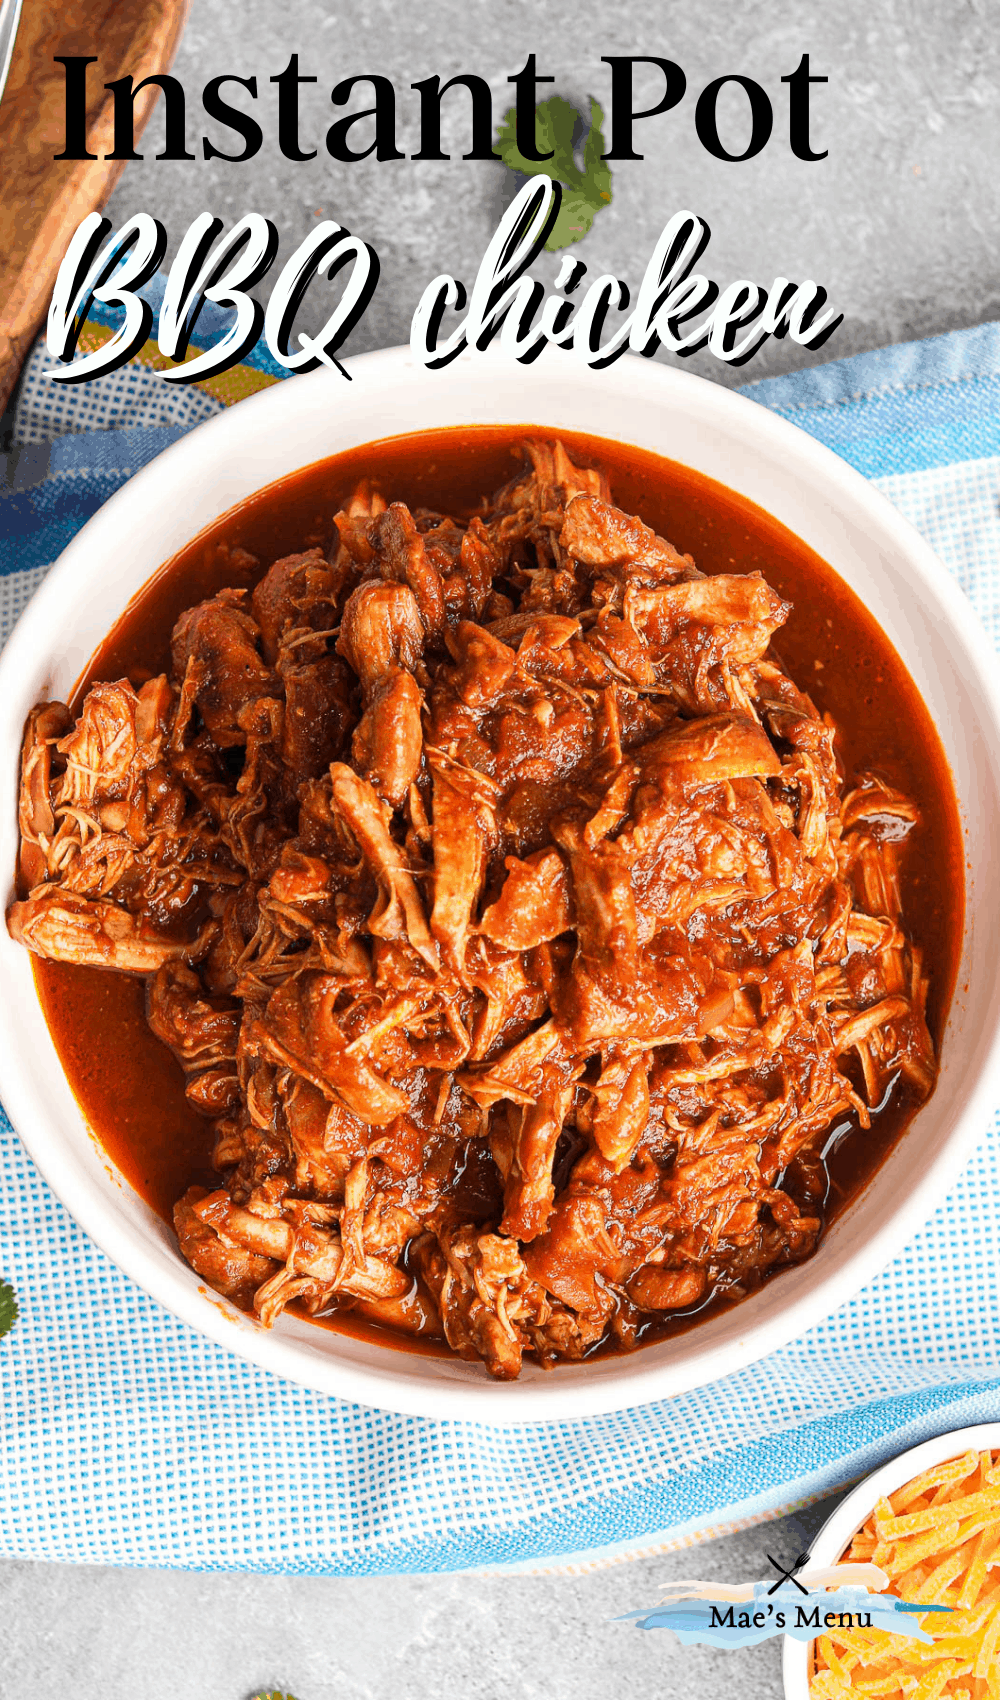 """Instant pot bbq chicken"" with an overhead shot of a bowl of bbq chicken"